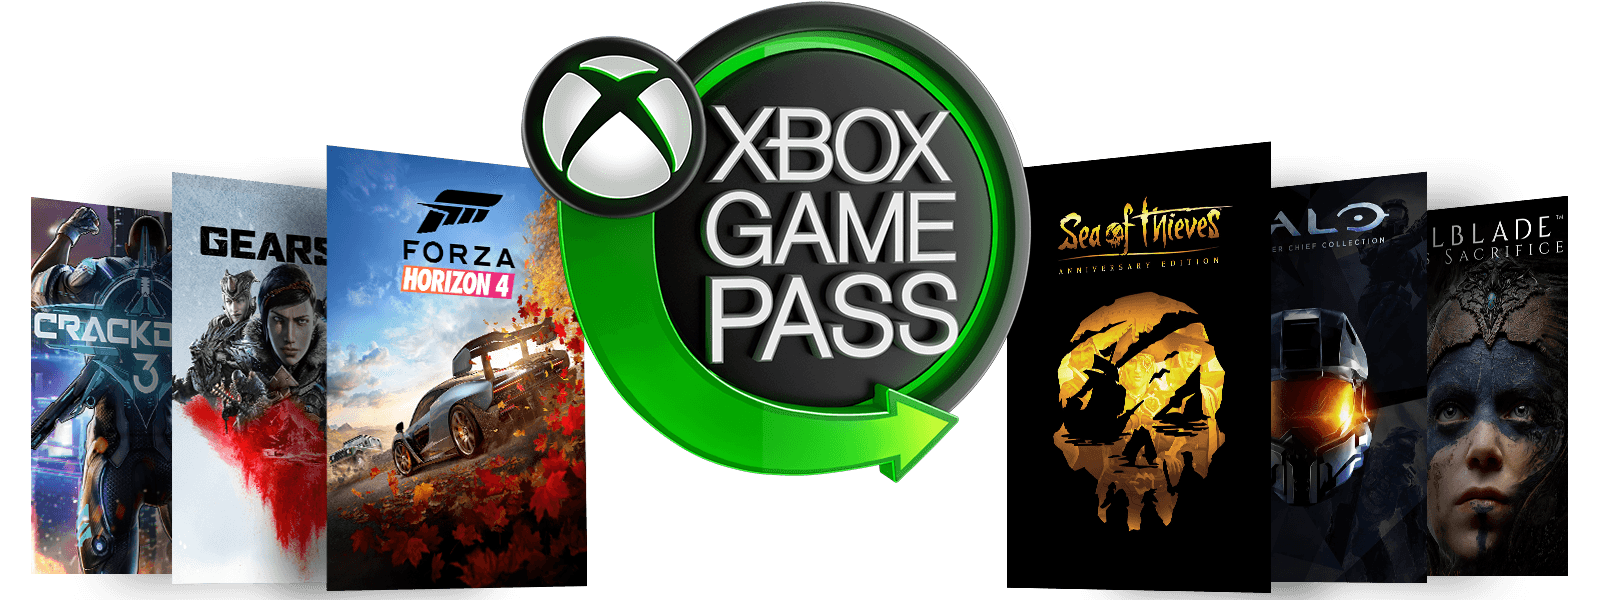 Verpackungsbilder für Sea of Thieves, PLAYERUNKNOWNS Battleground, Forza Horizon 4, Crackdown 3, Halo the Master Chief Collection und Hellblade Senua's Sacrifice umschließen das Neon-Logo von Xbox Game Pass